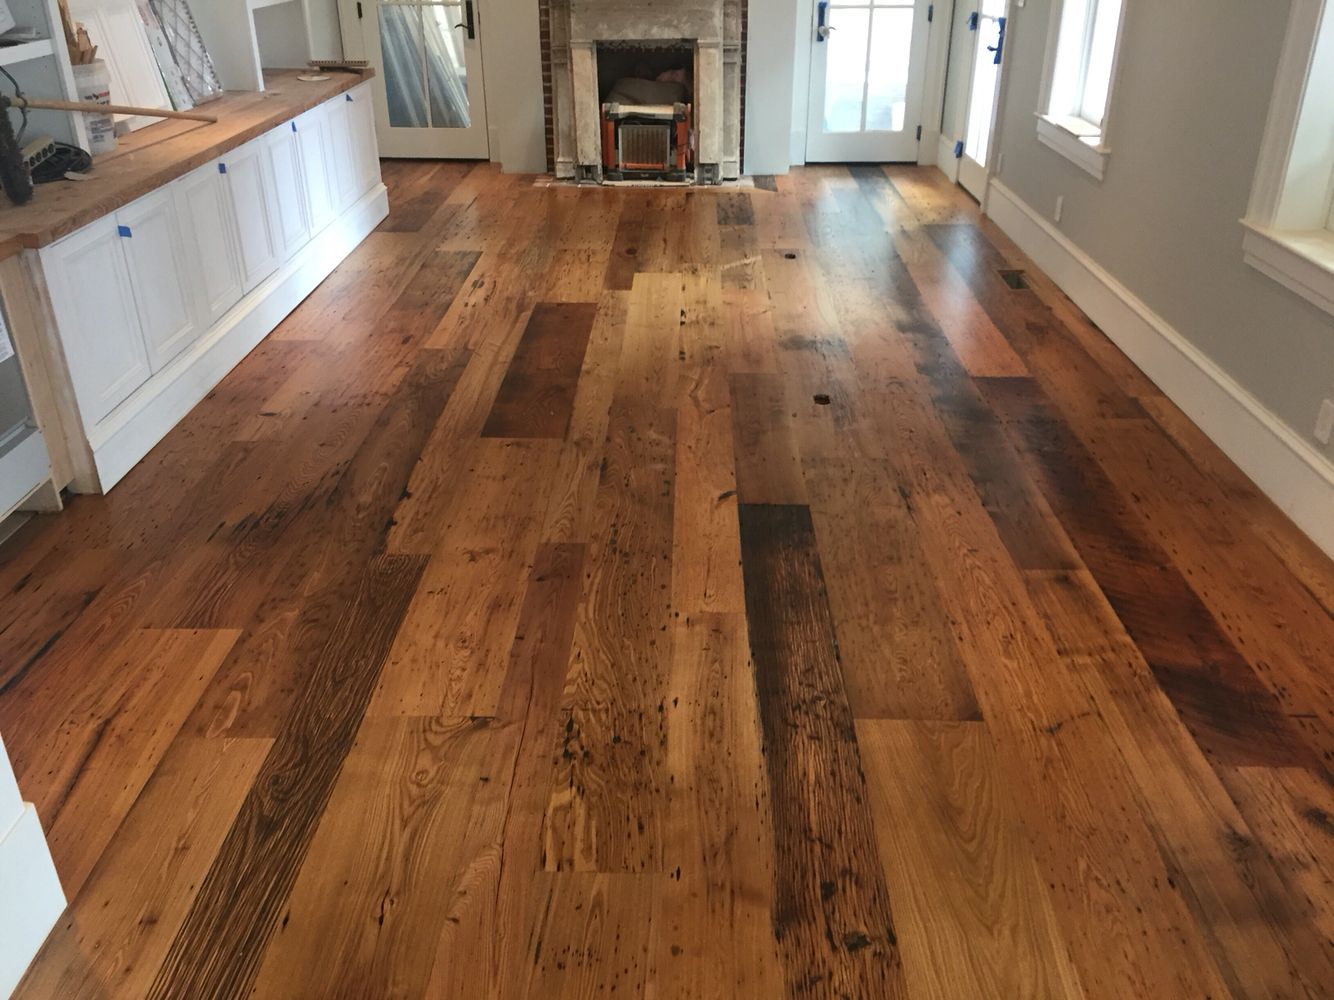 Locally Milled Wide Plank Reclaimed Chestnut Flooring Finished